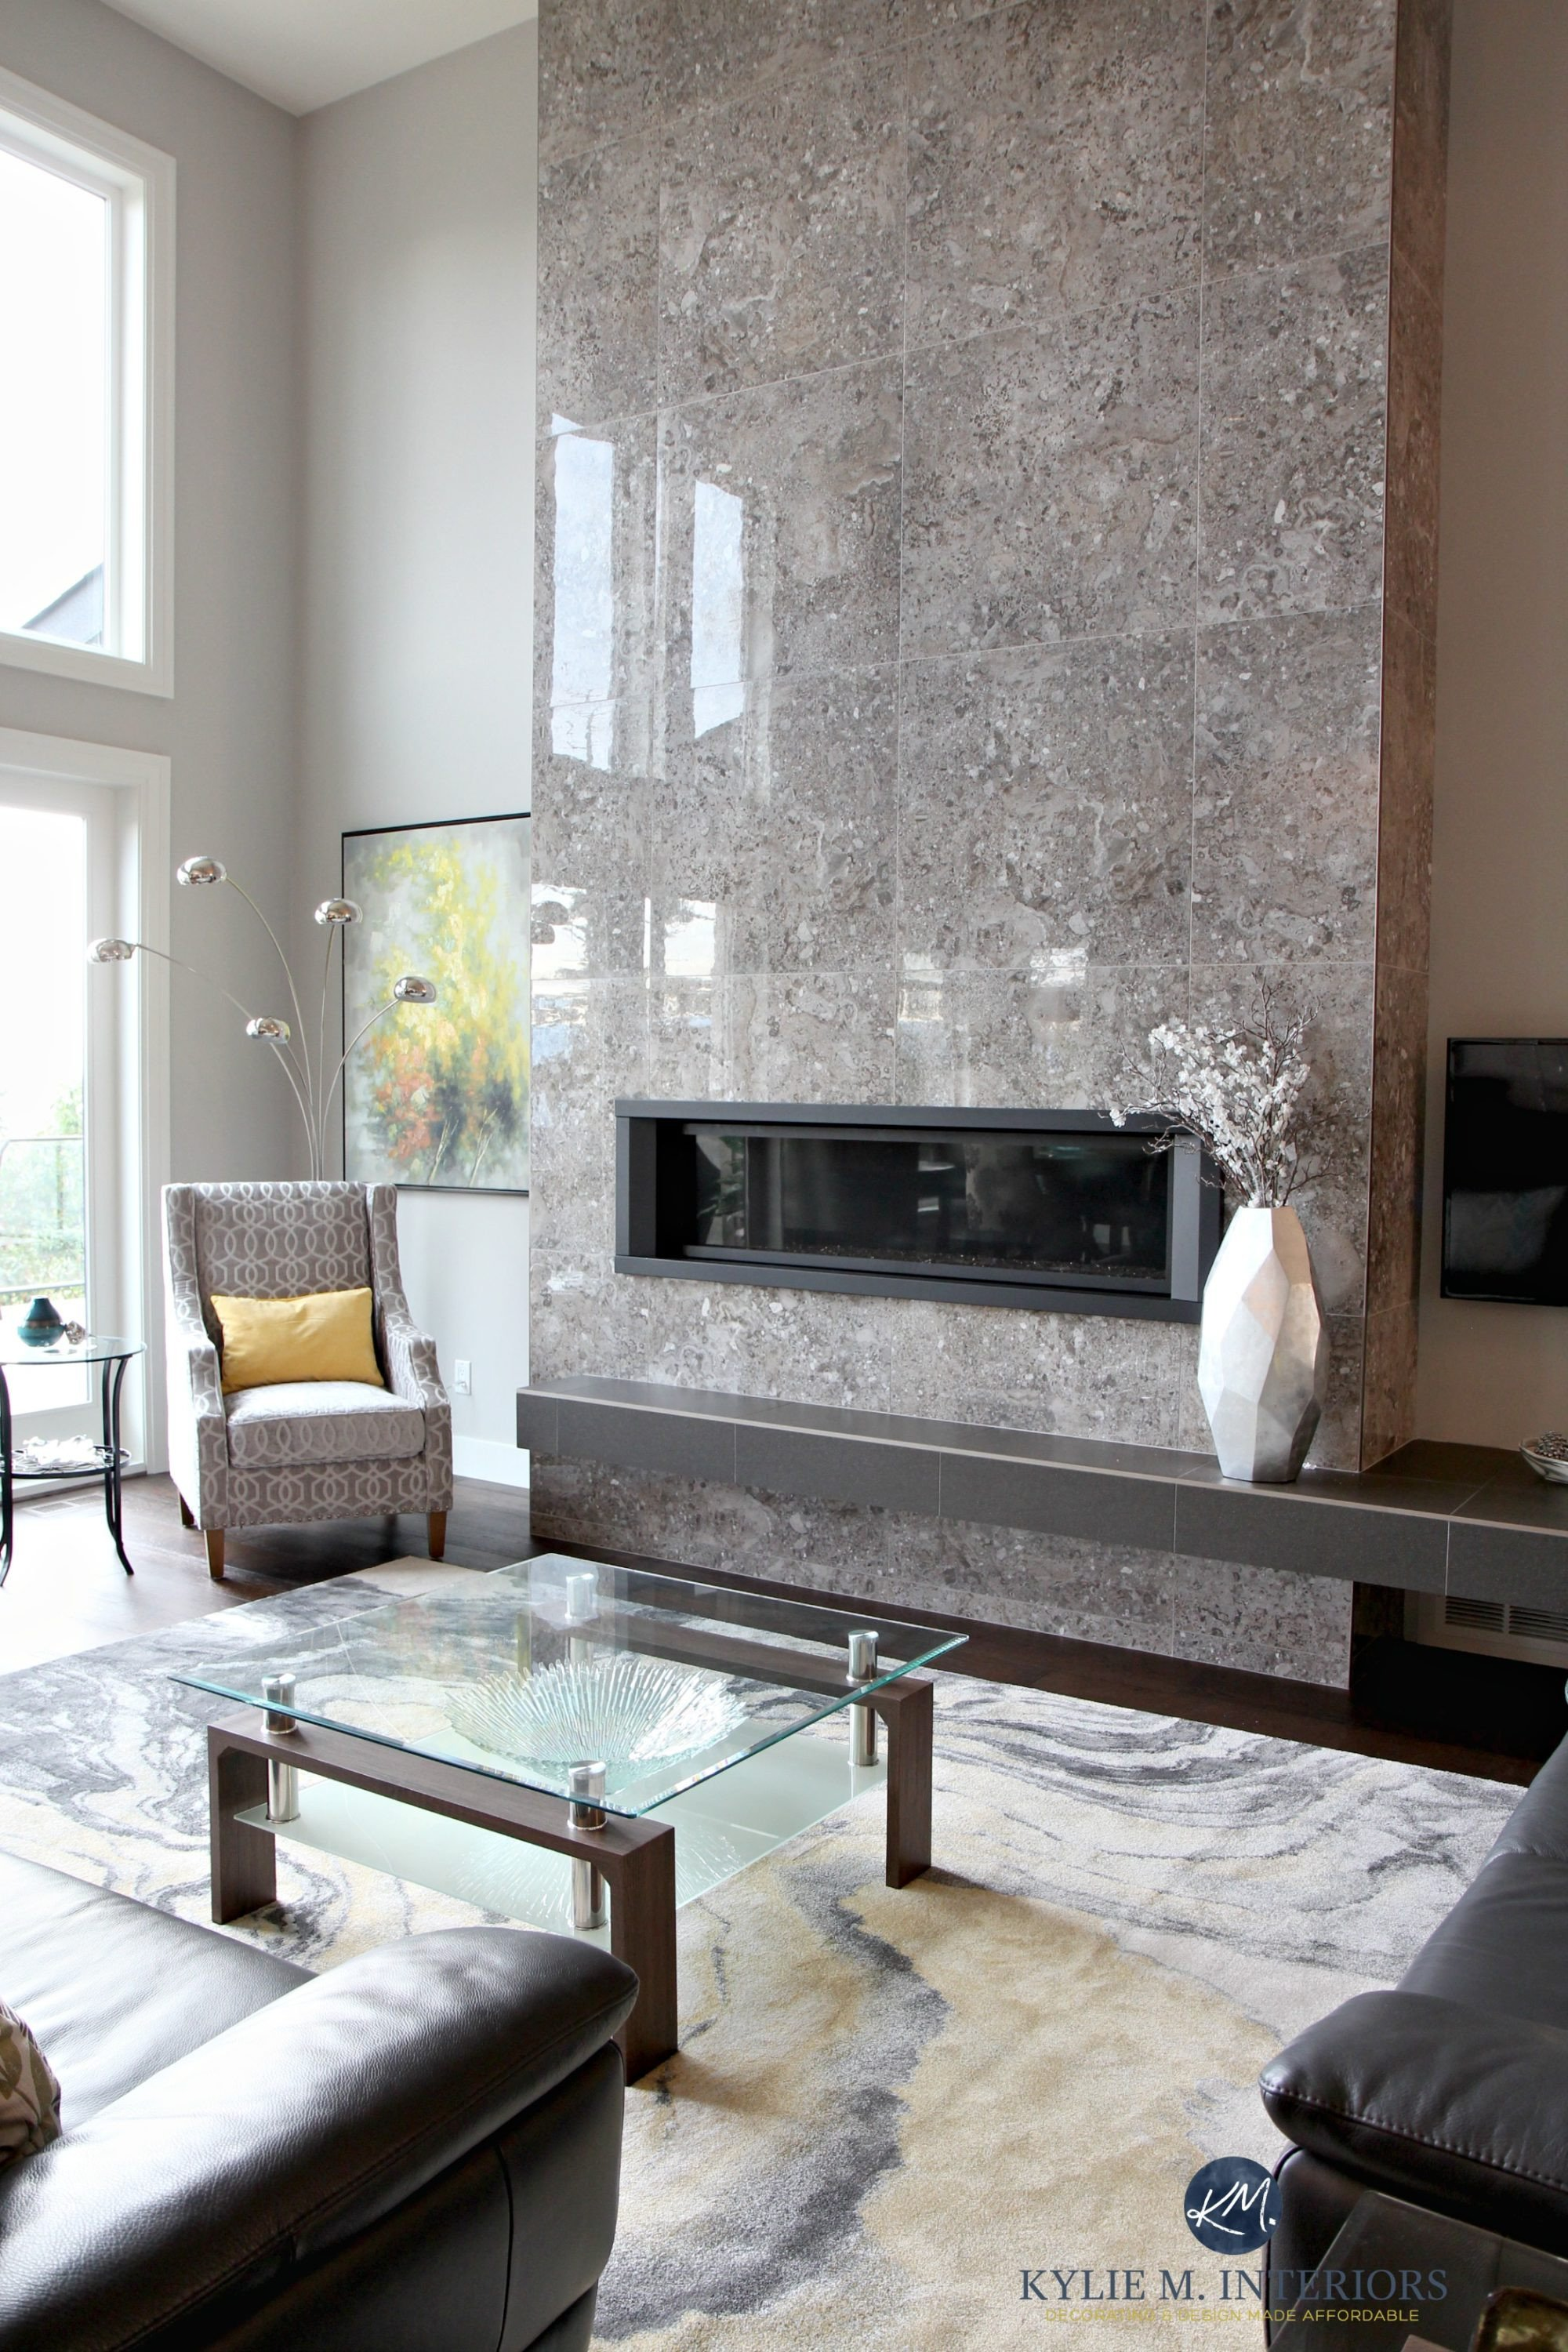 Modern Living Room Decorating Ideas Fireplace Elegant Contemporary Design Living Room with Tall Tile Fireplace with Modern Linear Gas Insert and